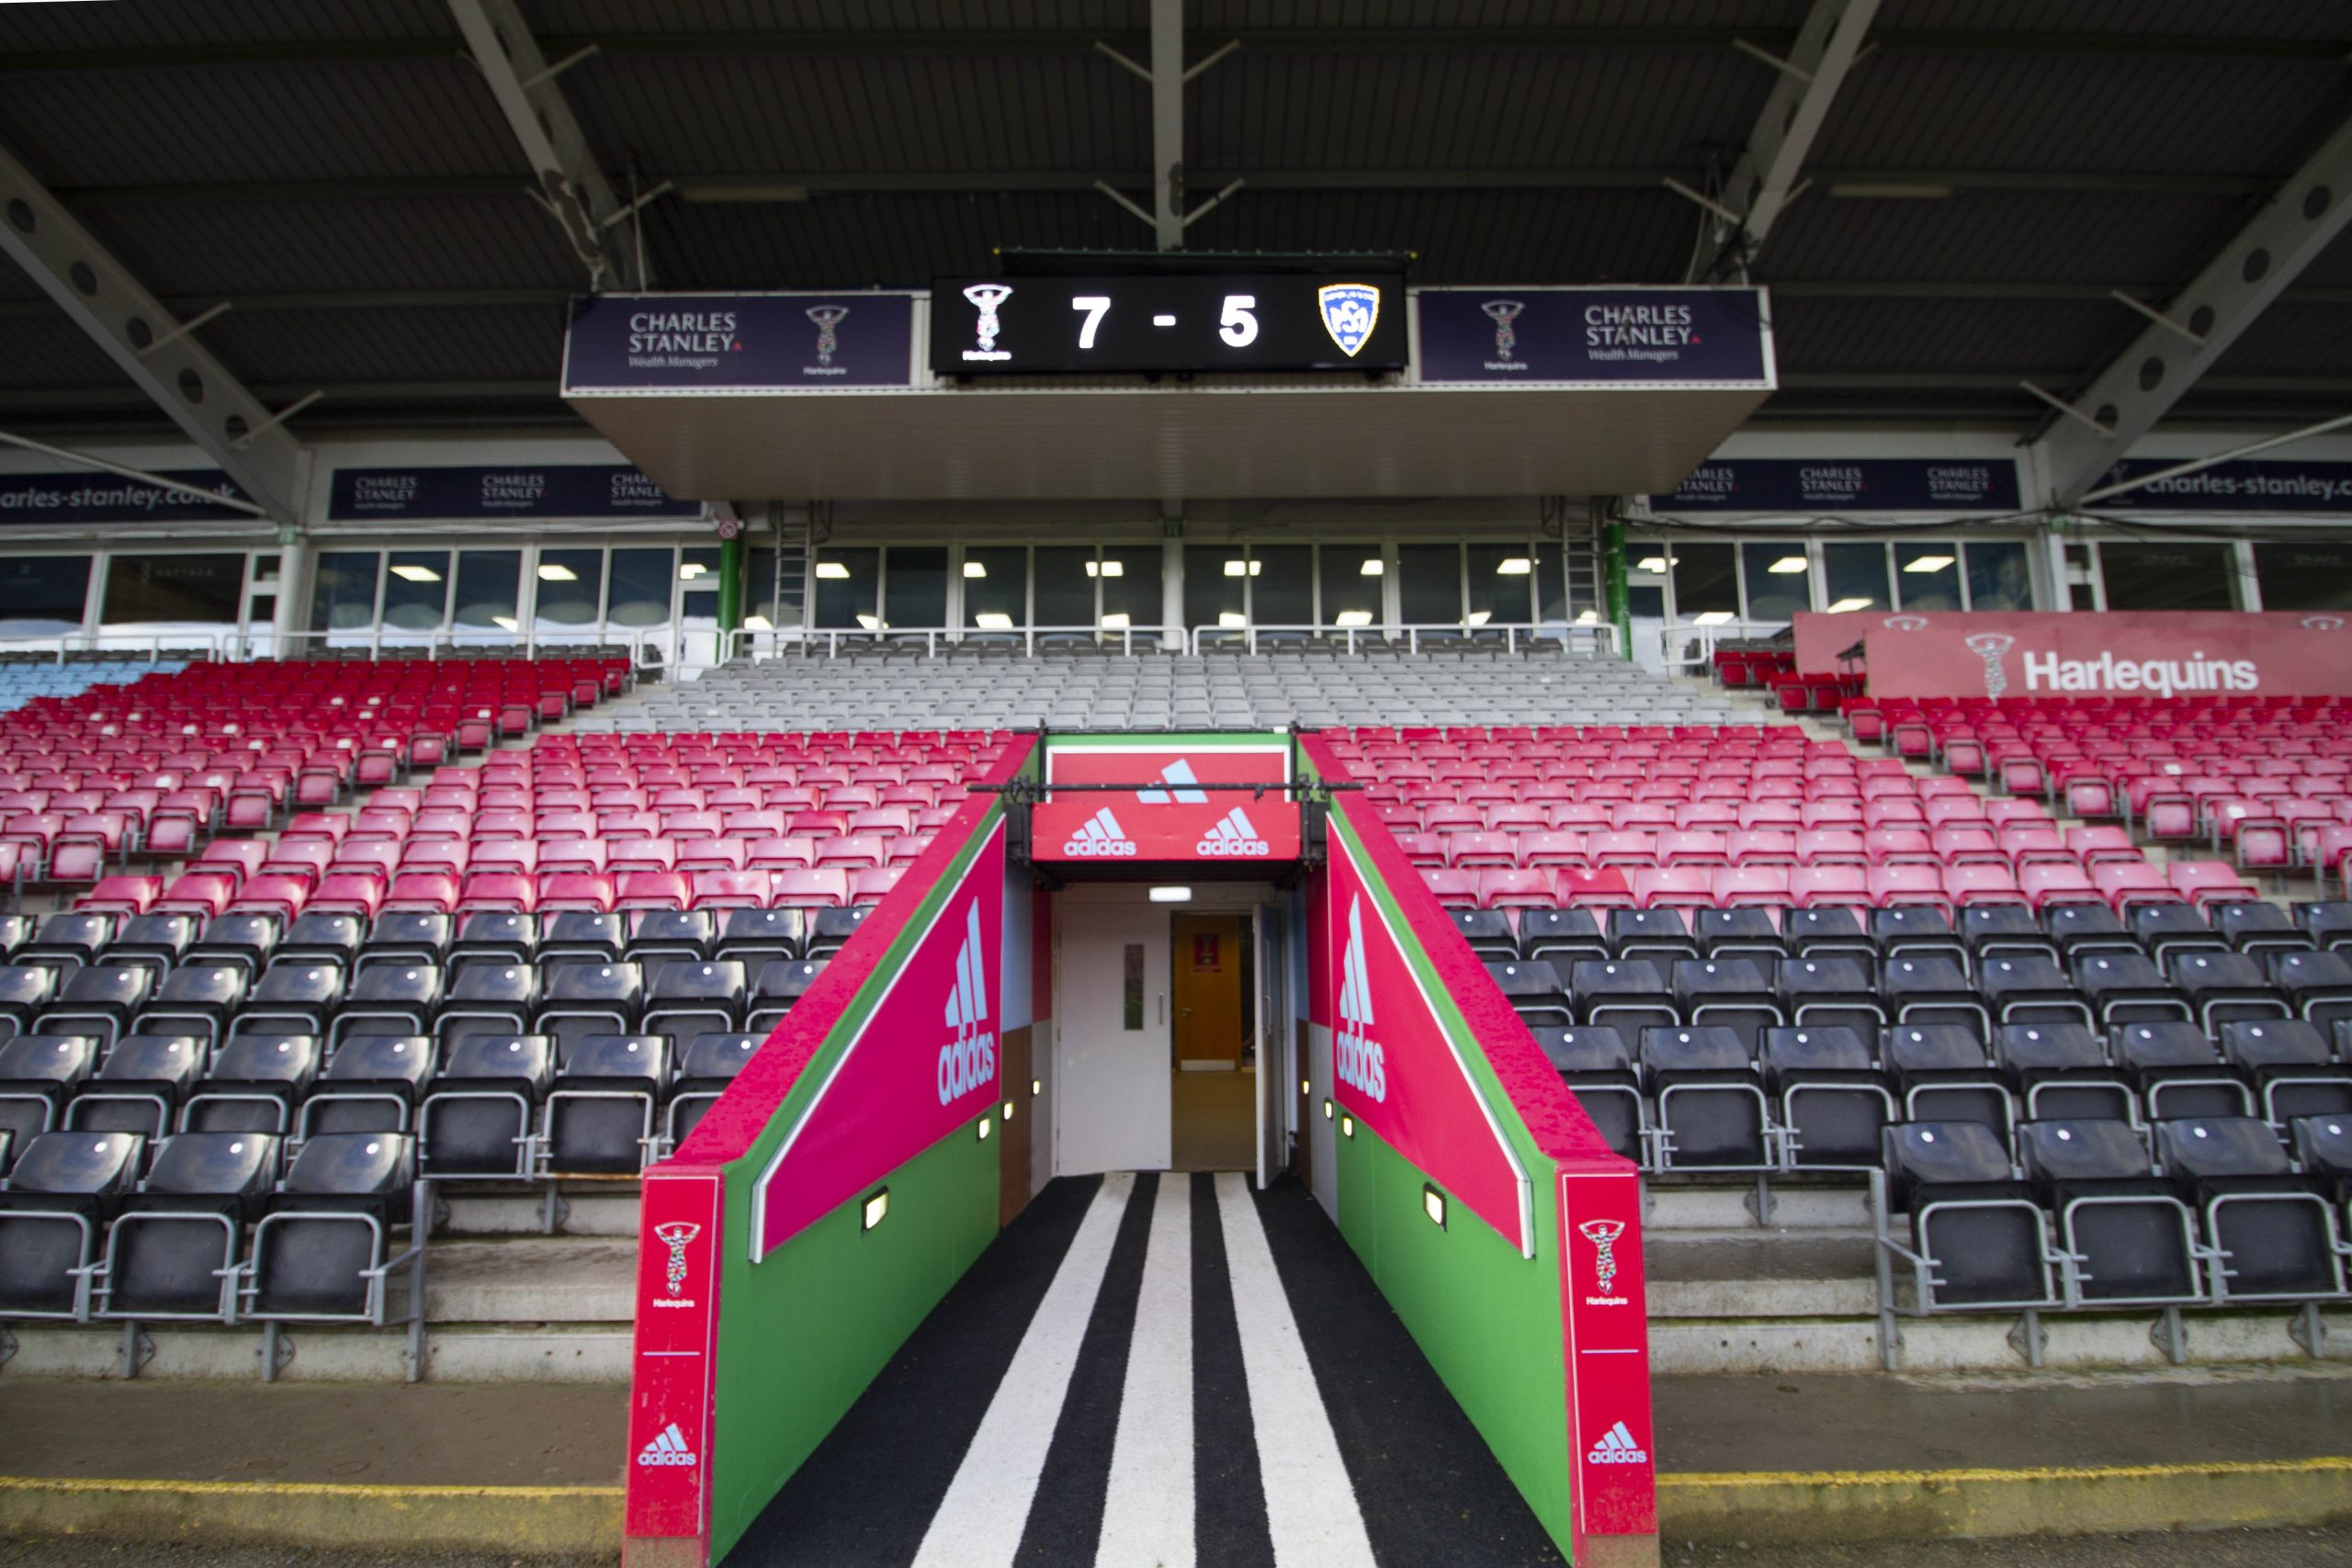 Harlequins-Rugby-Screen-Concept-Group-8